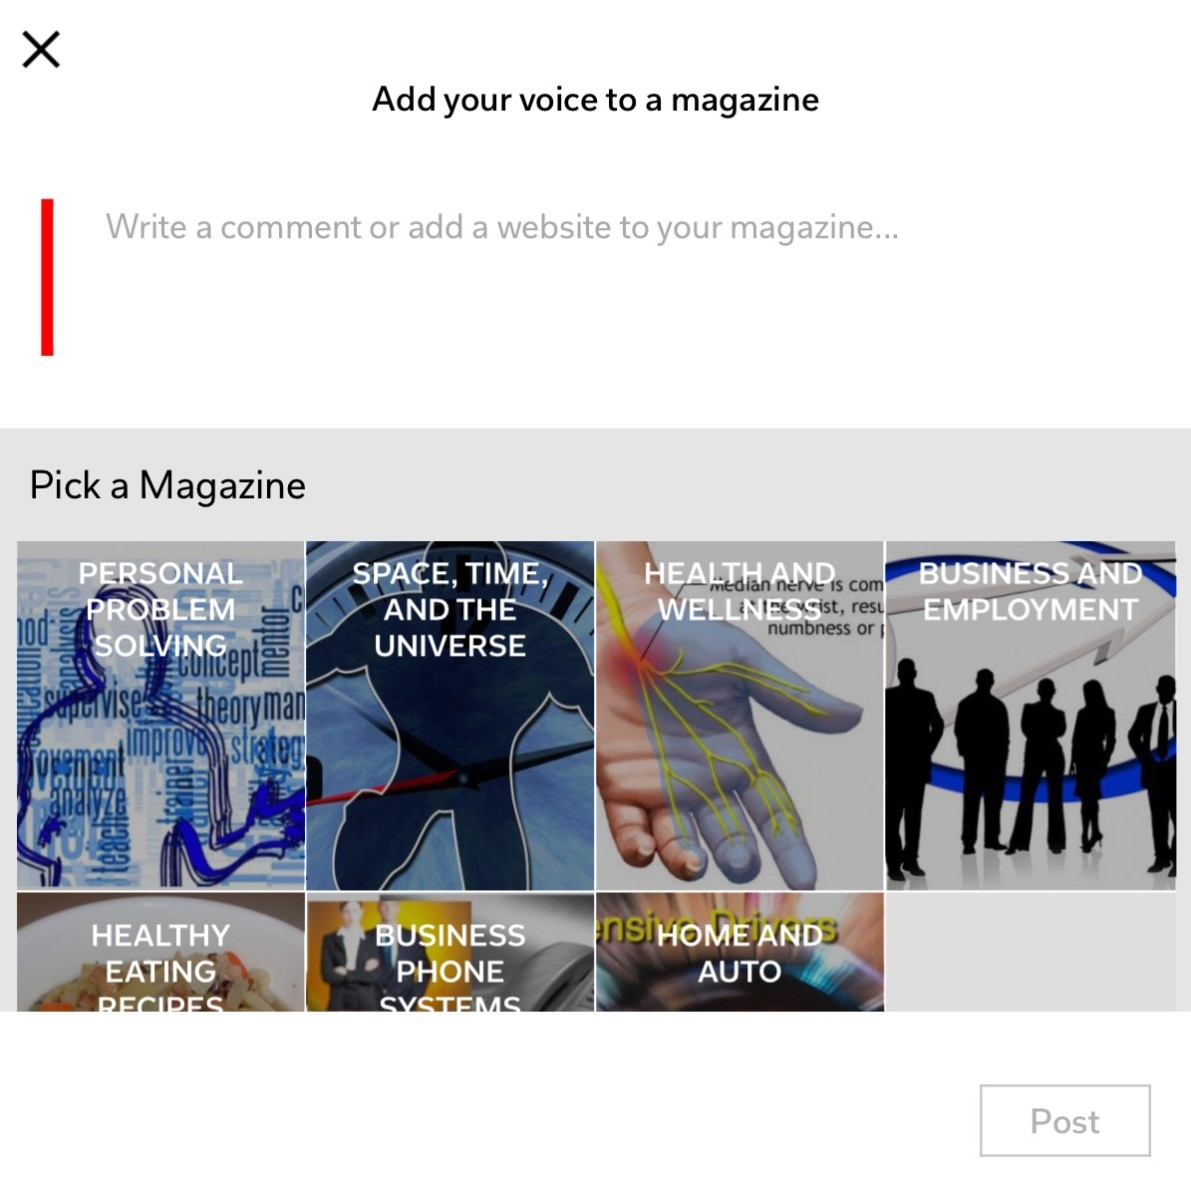 Add your voice to a magazine